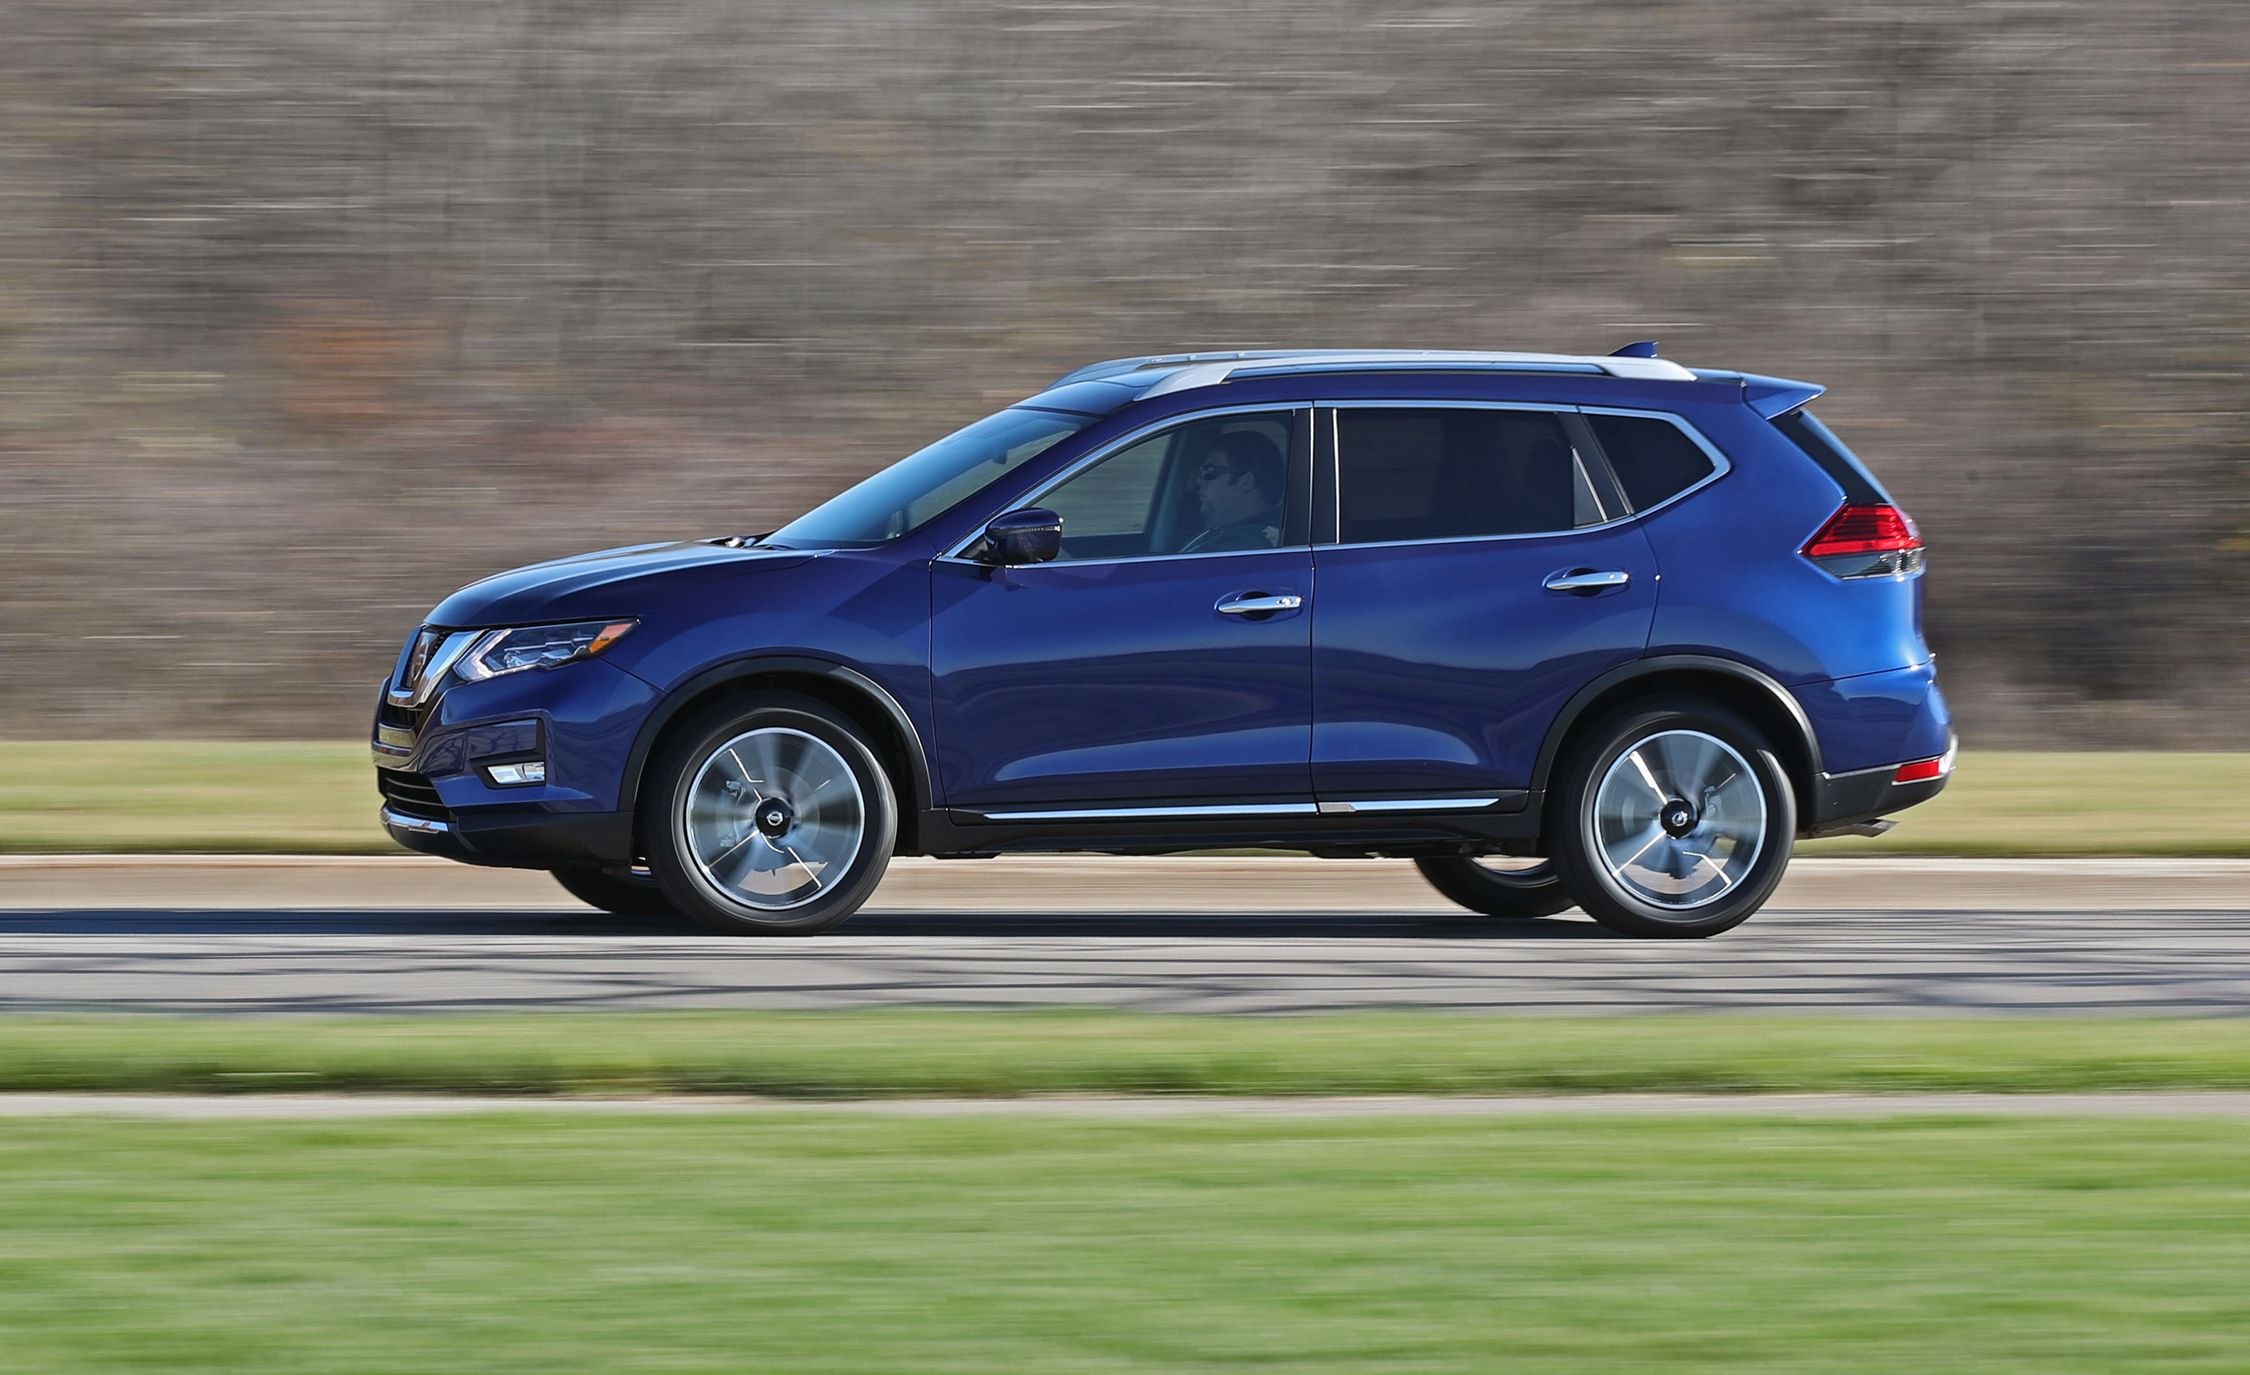 Nissan Rogue Owners Manual: Intelligent 4WD (if so equipped)